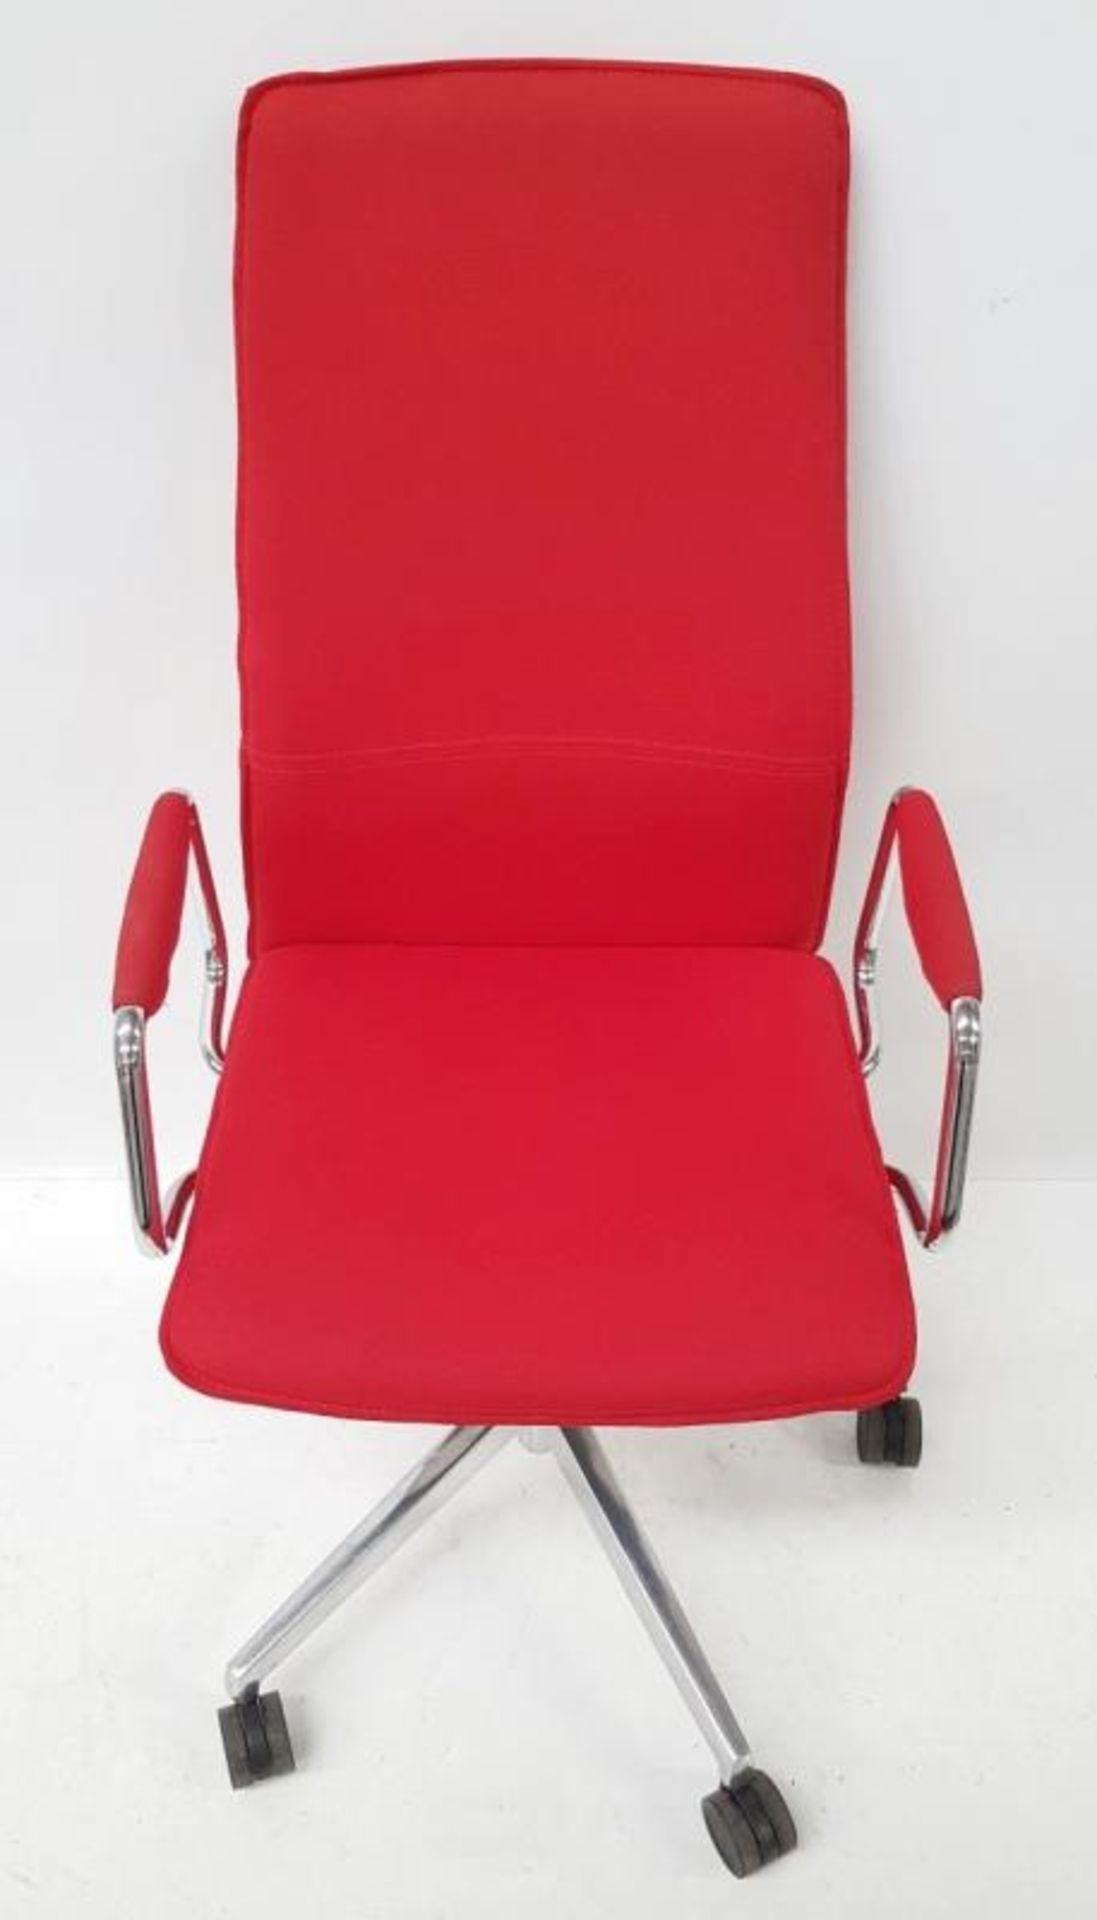 Lot 3508 - 1 x 'Sven Christiansen' Premium Designer High-back Office Chair In Red (HBB1HA) - Used, In Very Good